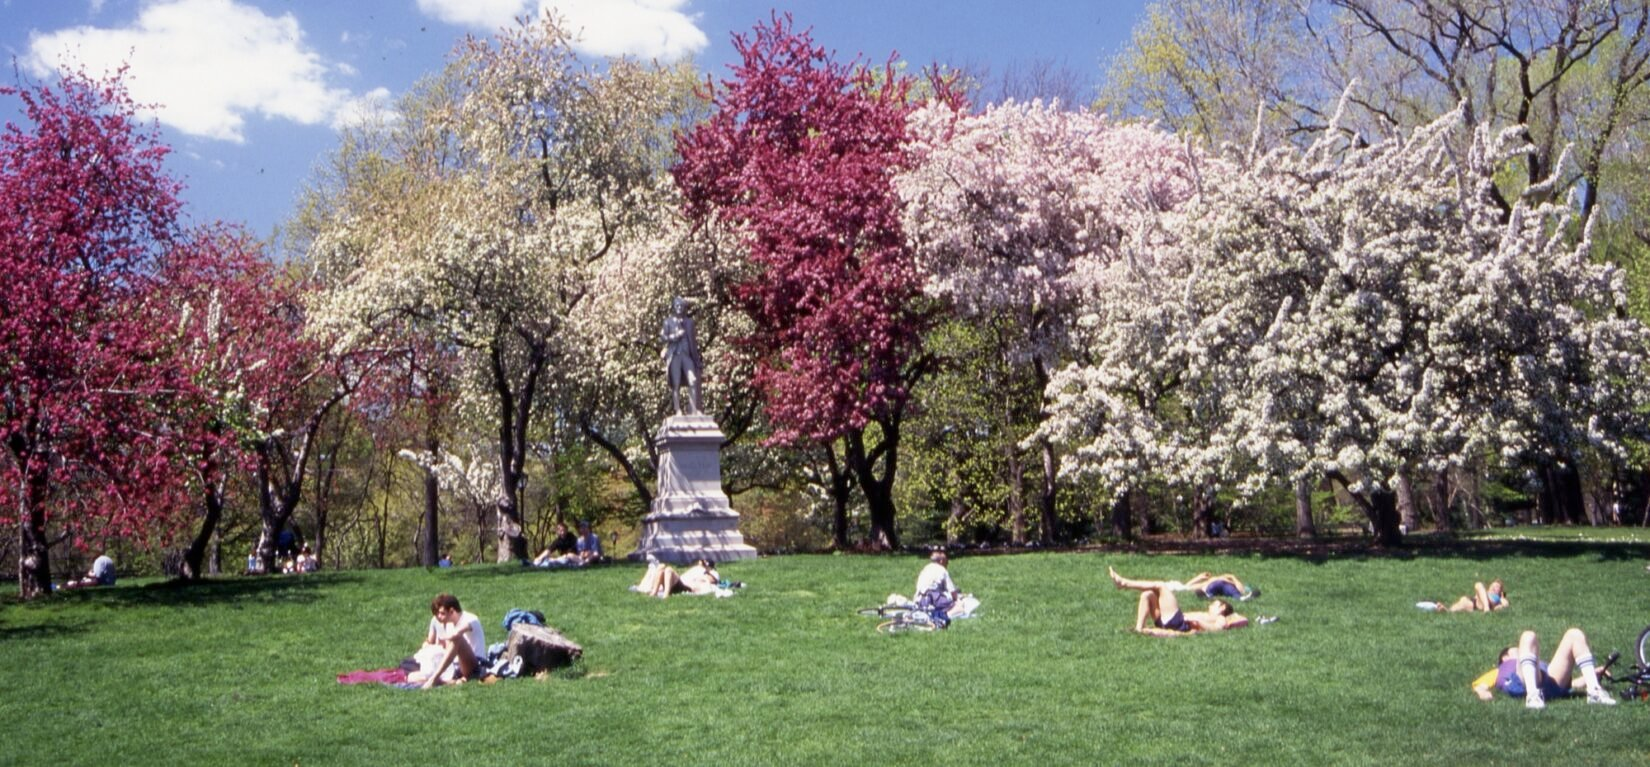 A row of trees in full spring bloom define a landscape scattered with lounging park goers.